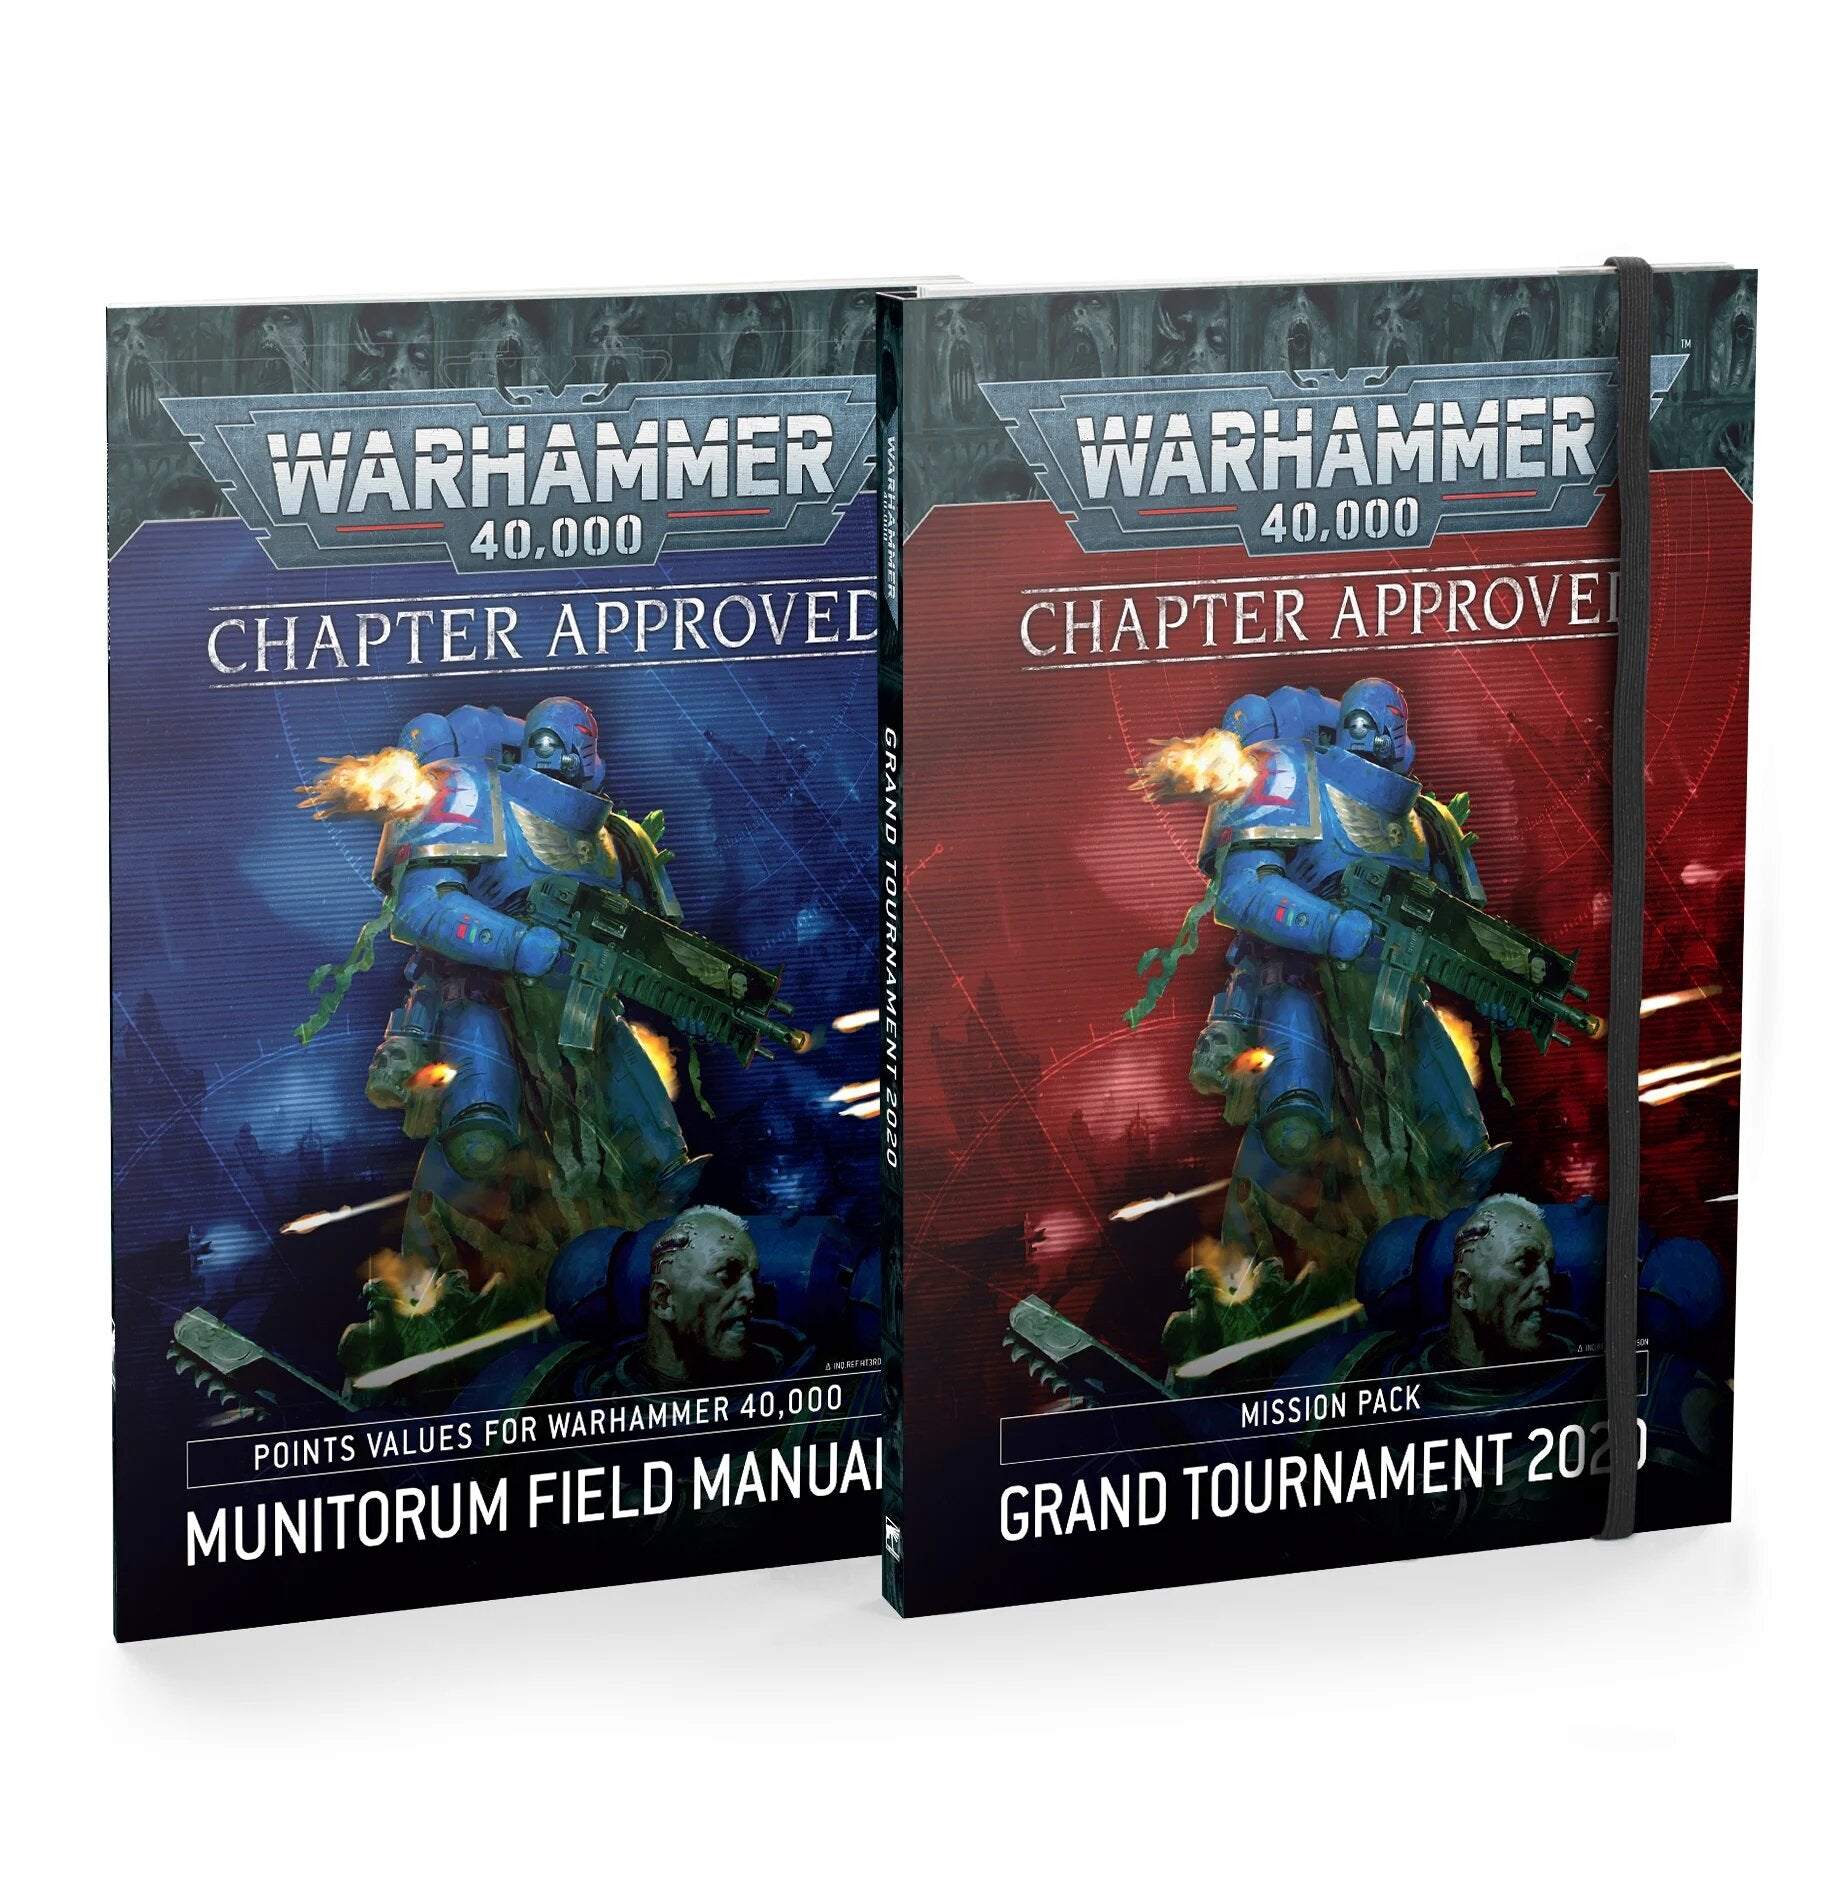 Chapter Approved: Grand Tournament 2020 Mission Pack and Munitorum Field Manual | HFX Games